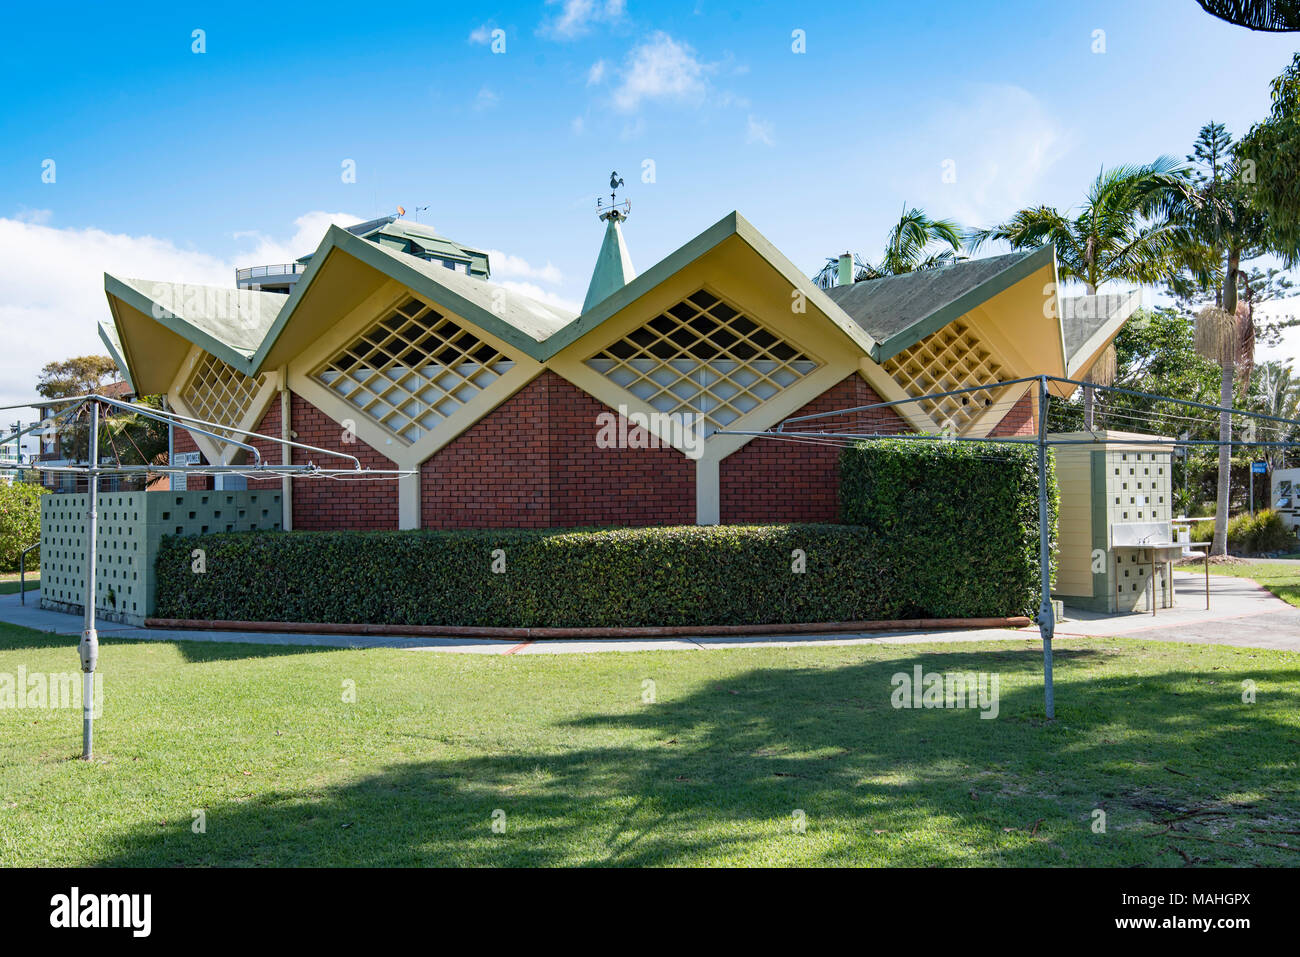 The amenities building at Forster Caravan Park. Possibly an example of Doo Wop or Googie architecture but certainly part of the Mid Century Modernism - Stock Image